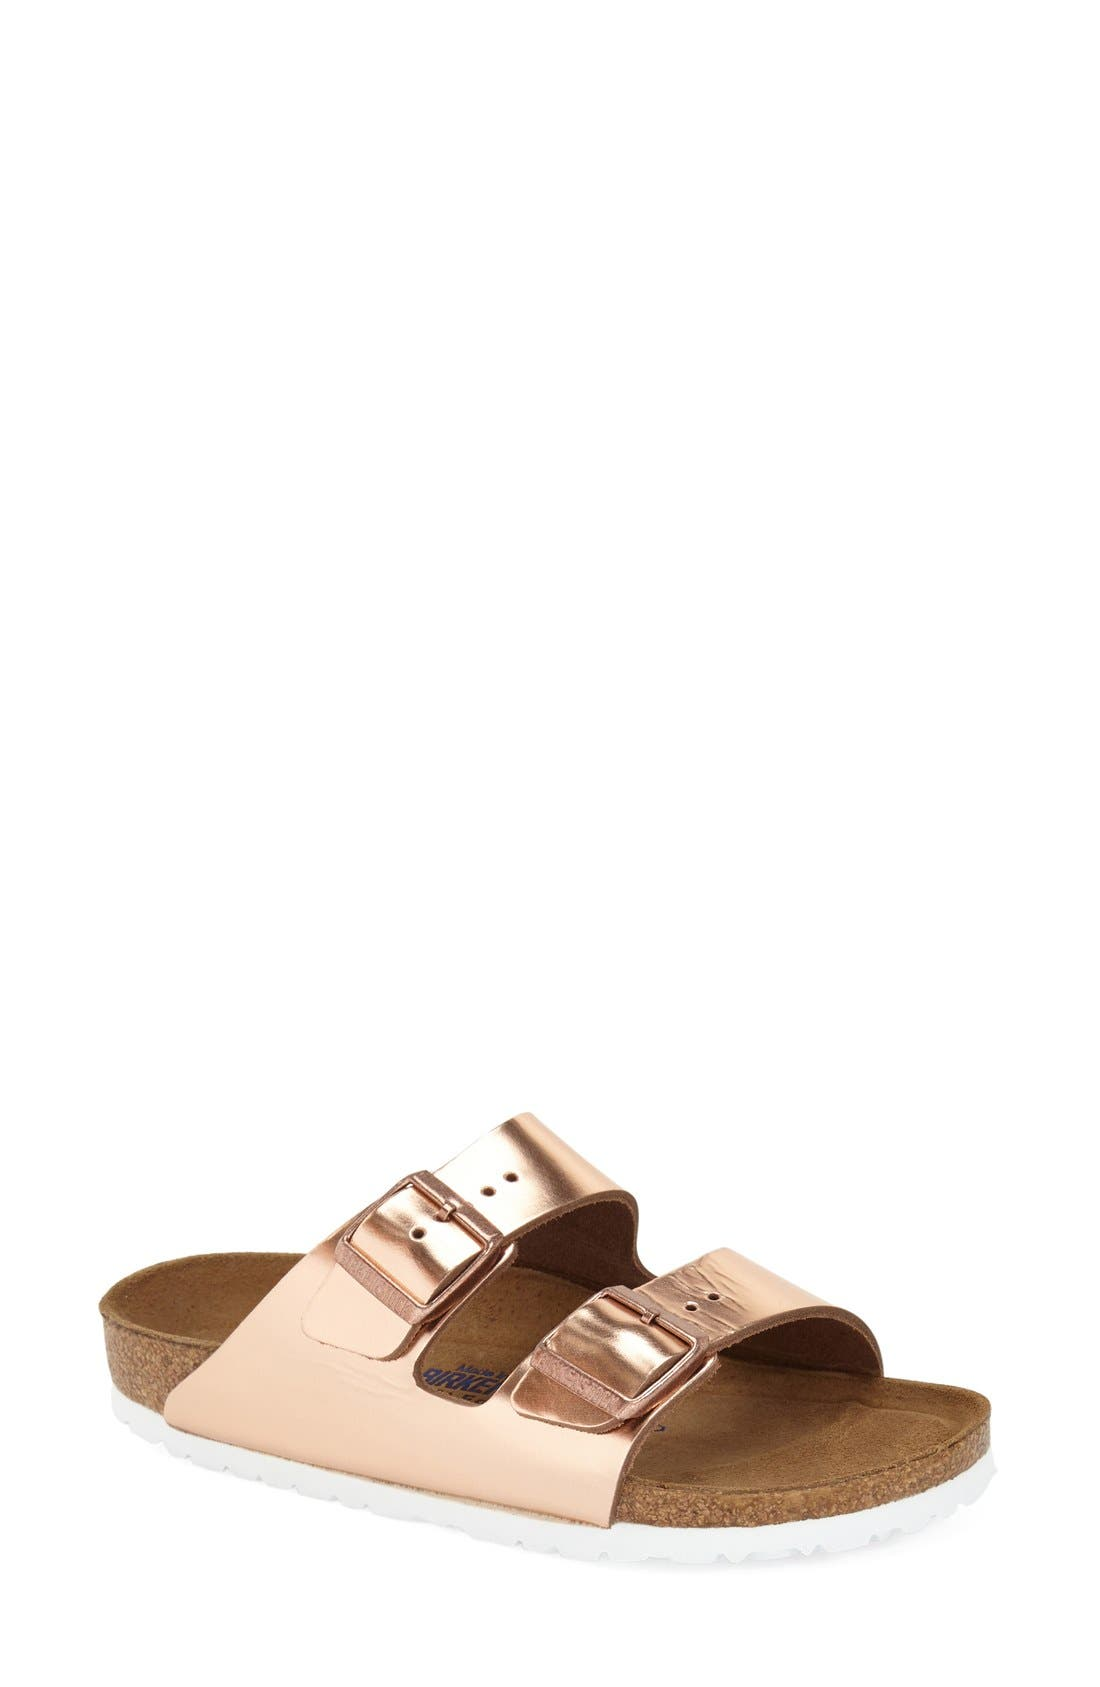 'Arizona' Soft Footbed Sandal, Main, color, Copper Leather